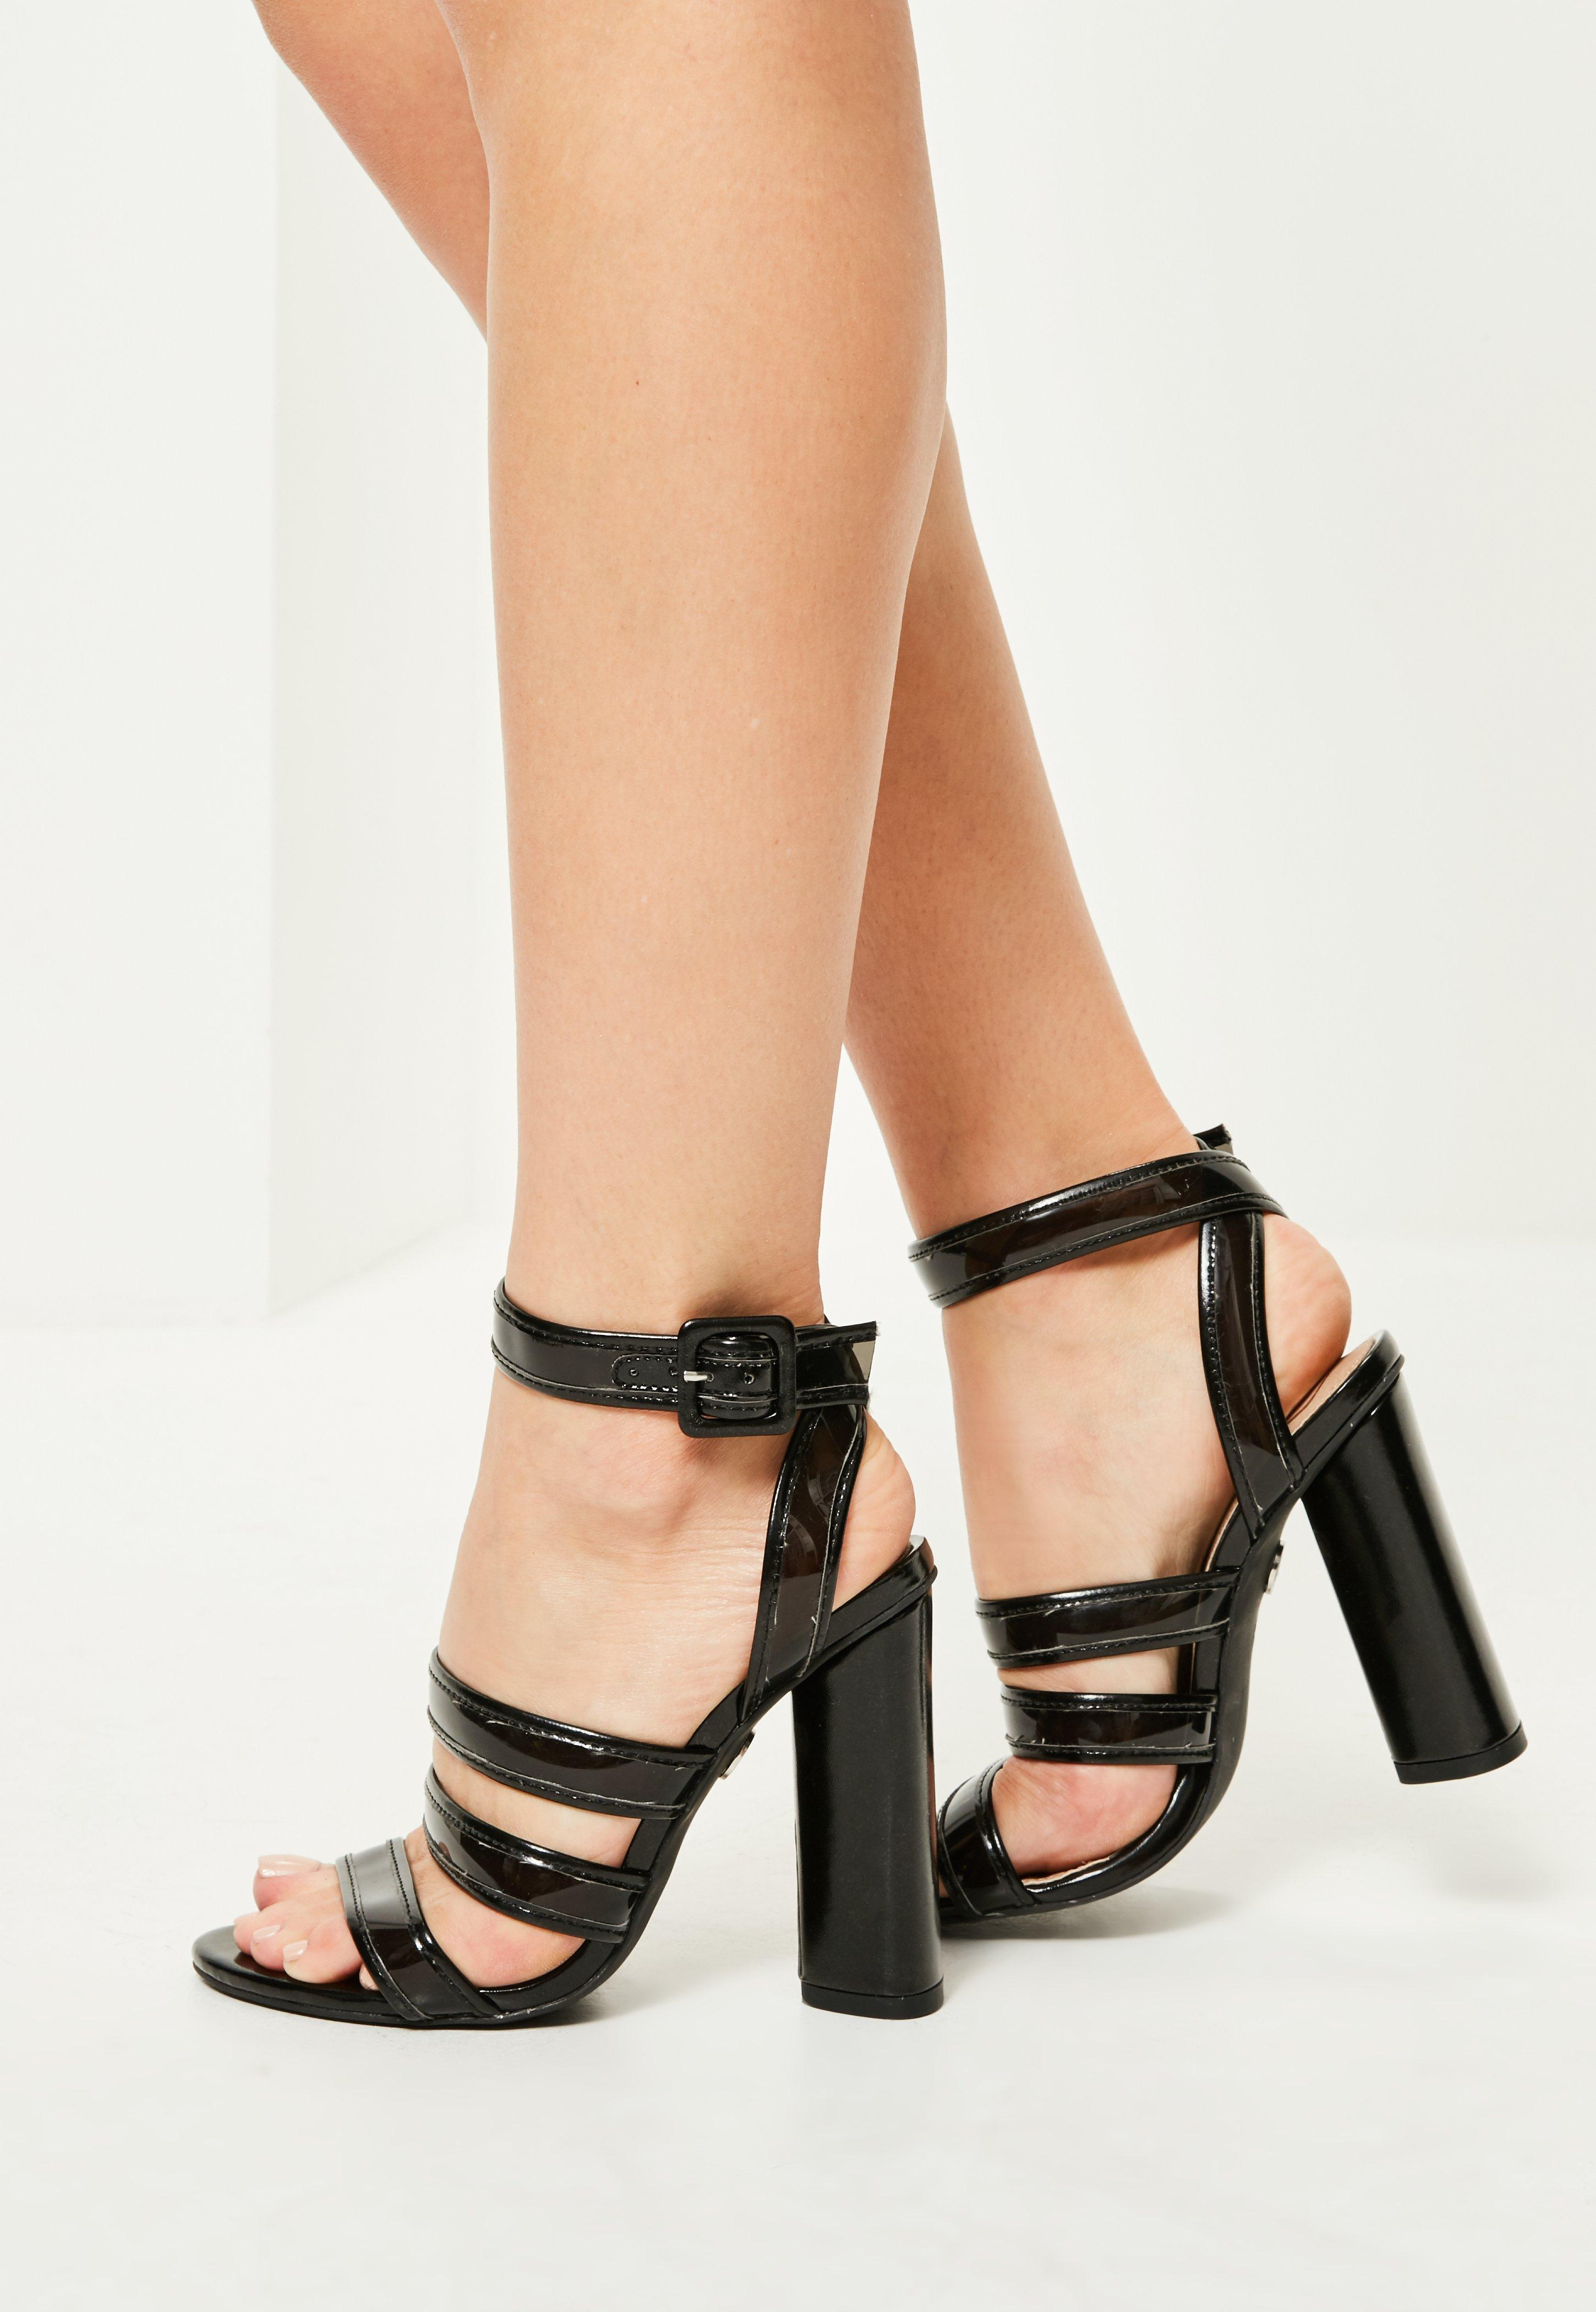 332a3004741 Missguided Black Multi Strap Block Heeled Sandals in Black - Lyst